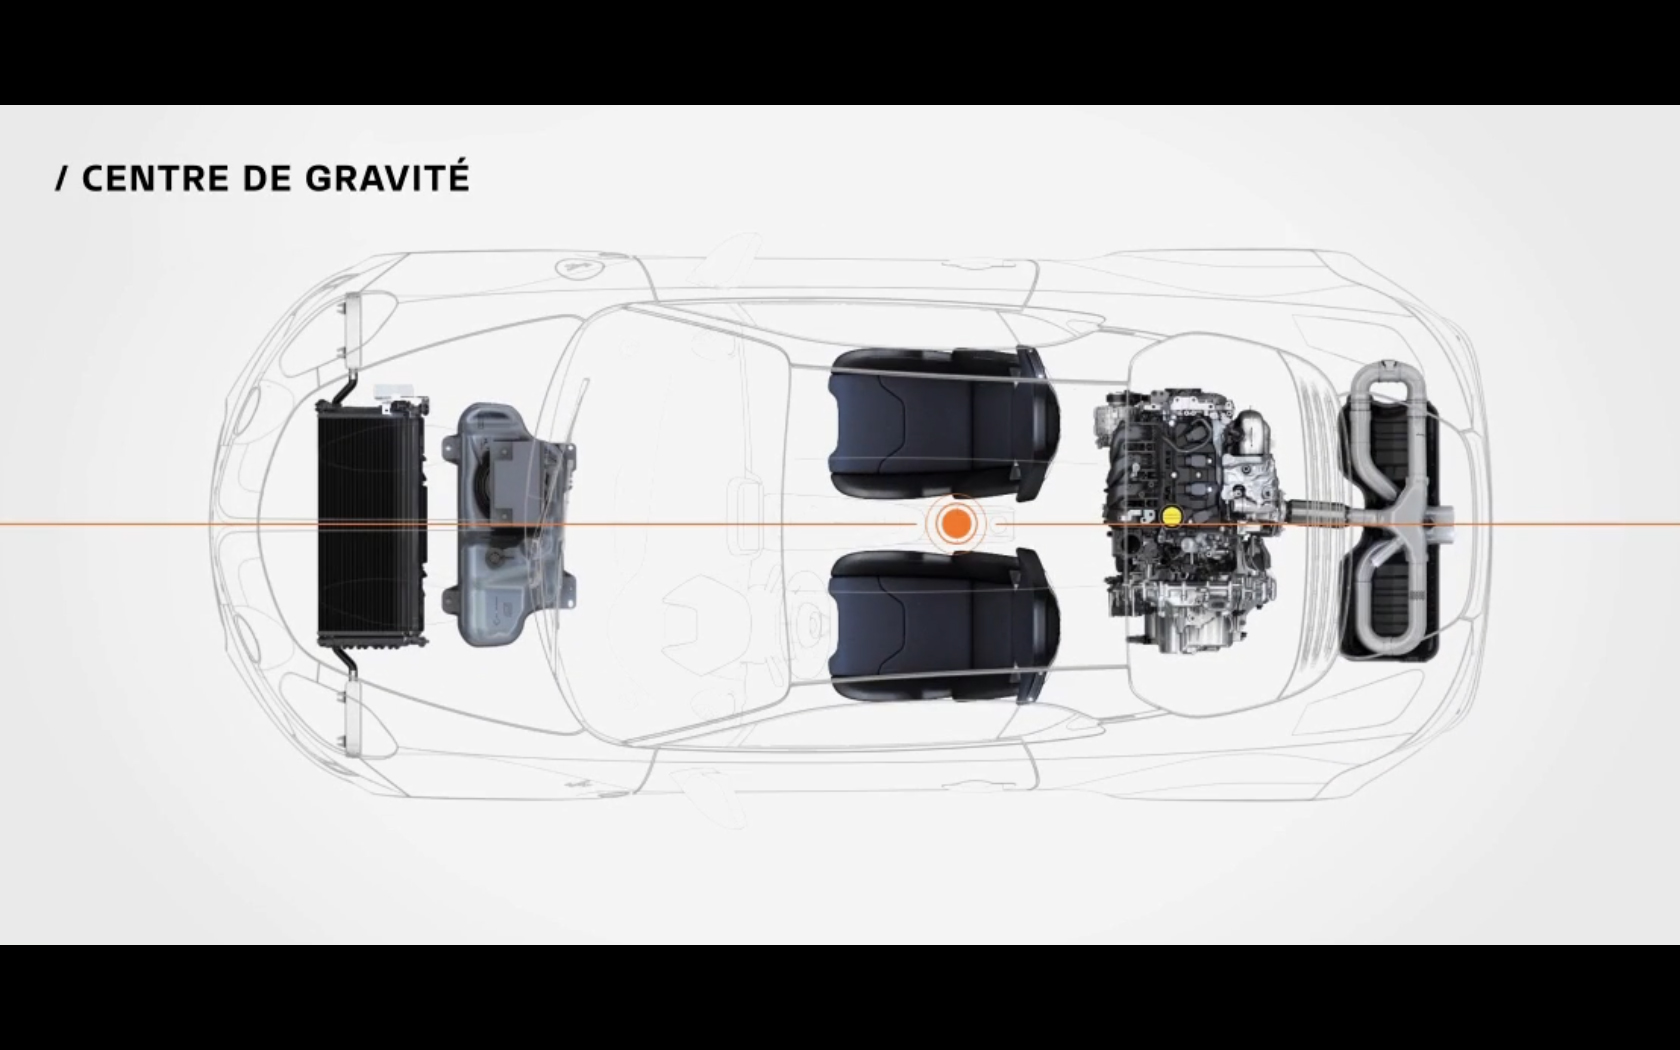 Alpine A110S - 2019 - chassis / châssis - top view - centre of gravity / centre de gravité